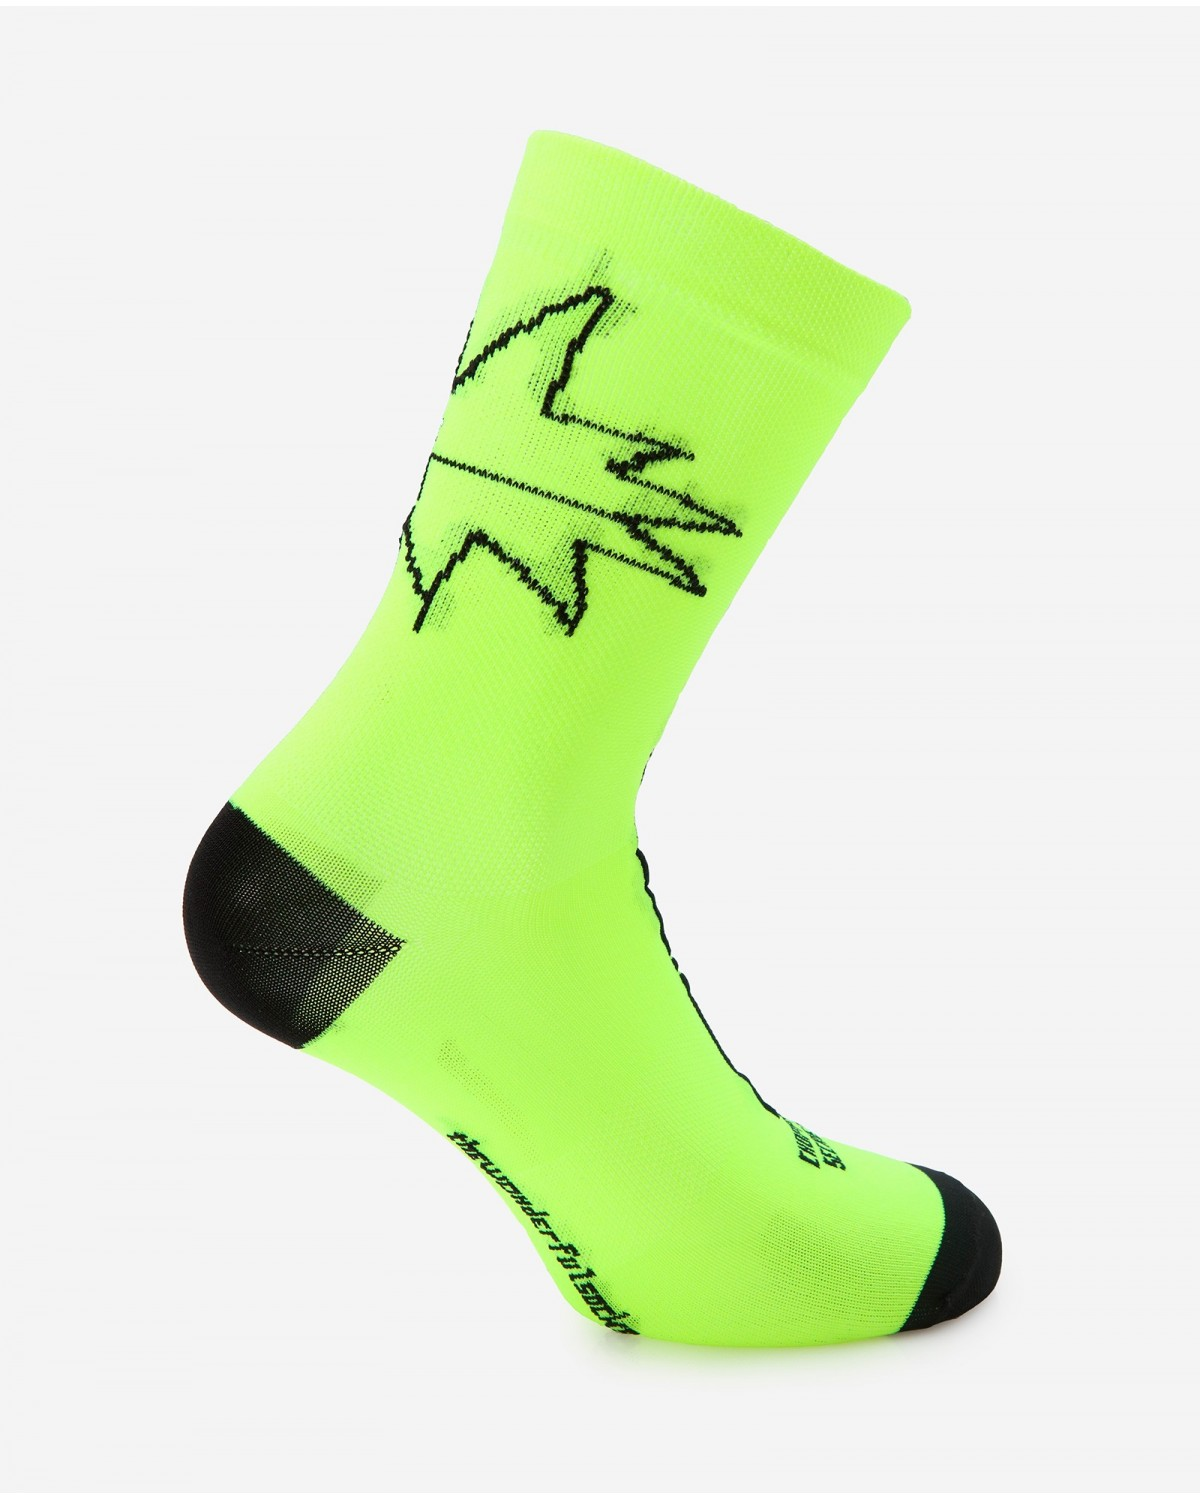 Rennrad Socken The Wonderful Socks La Bomba